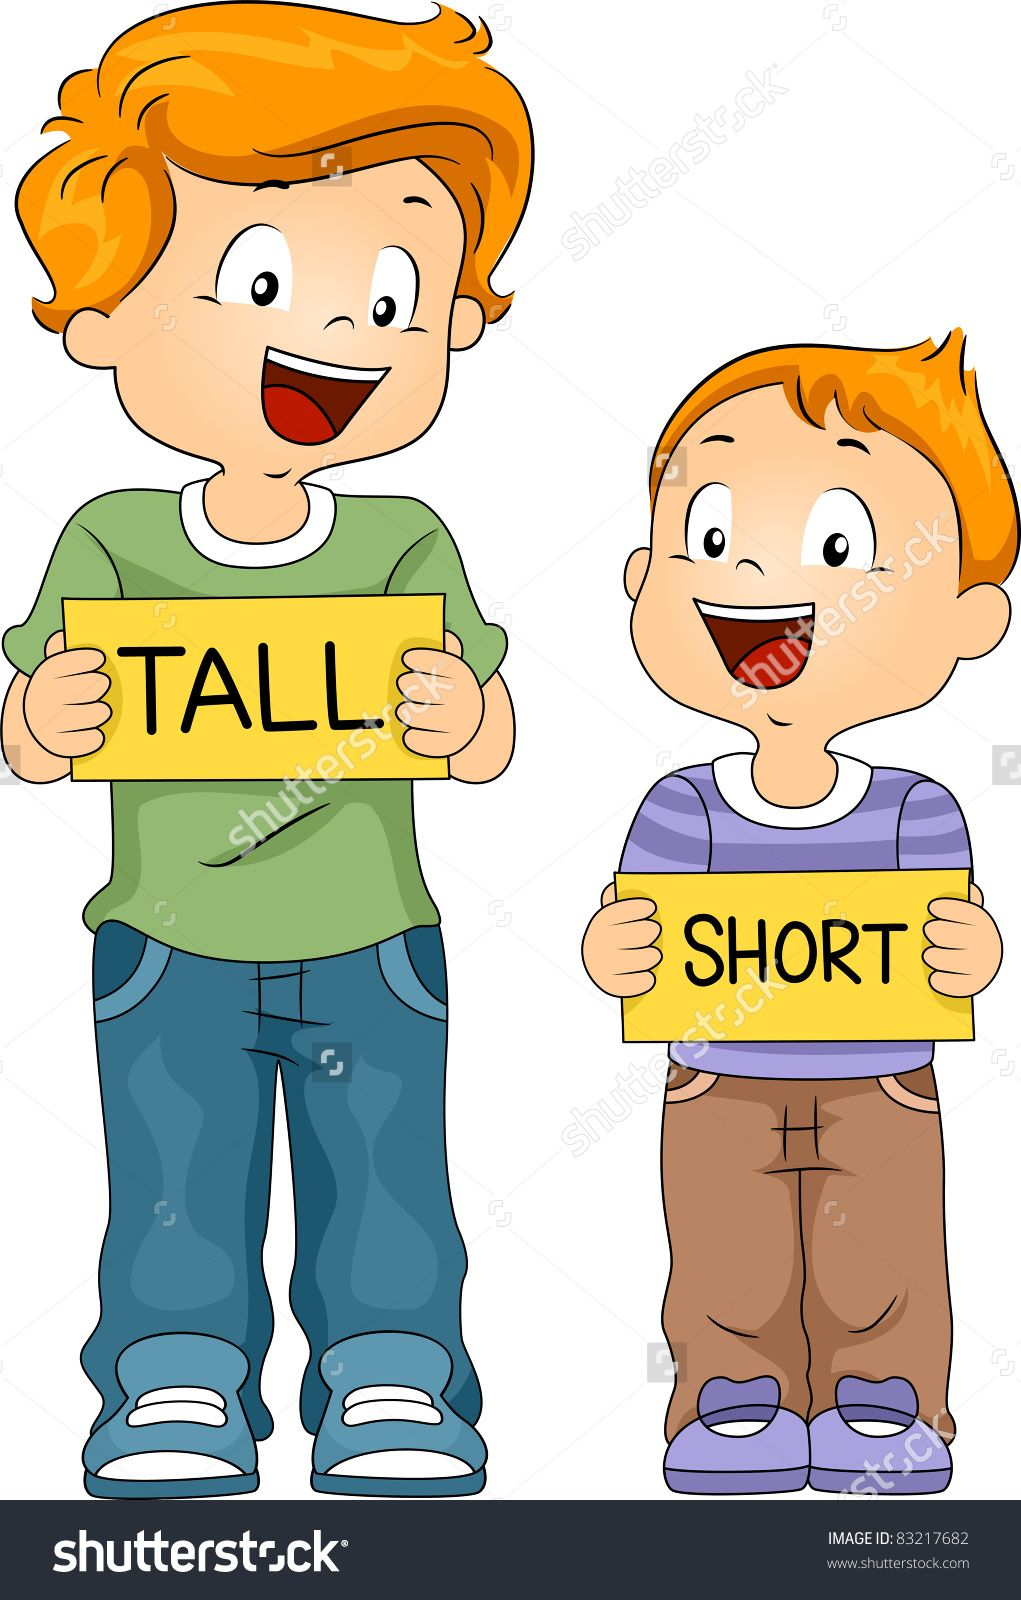 Short and buscar con. Tall clipart